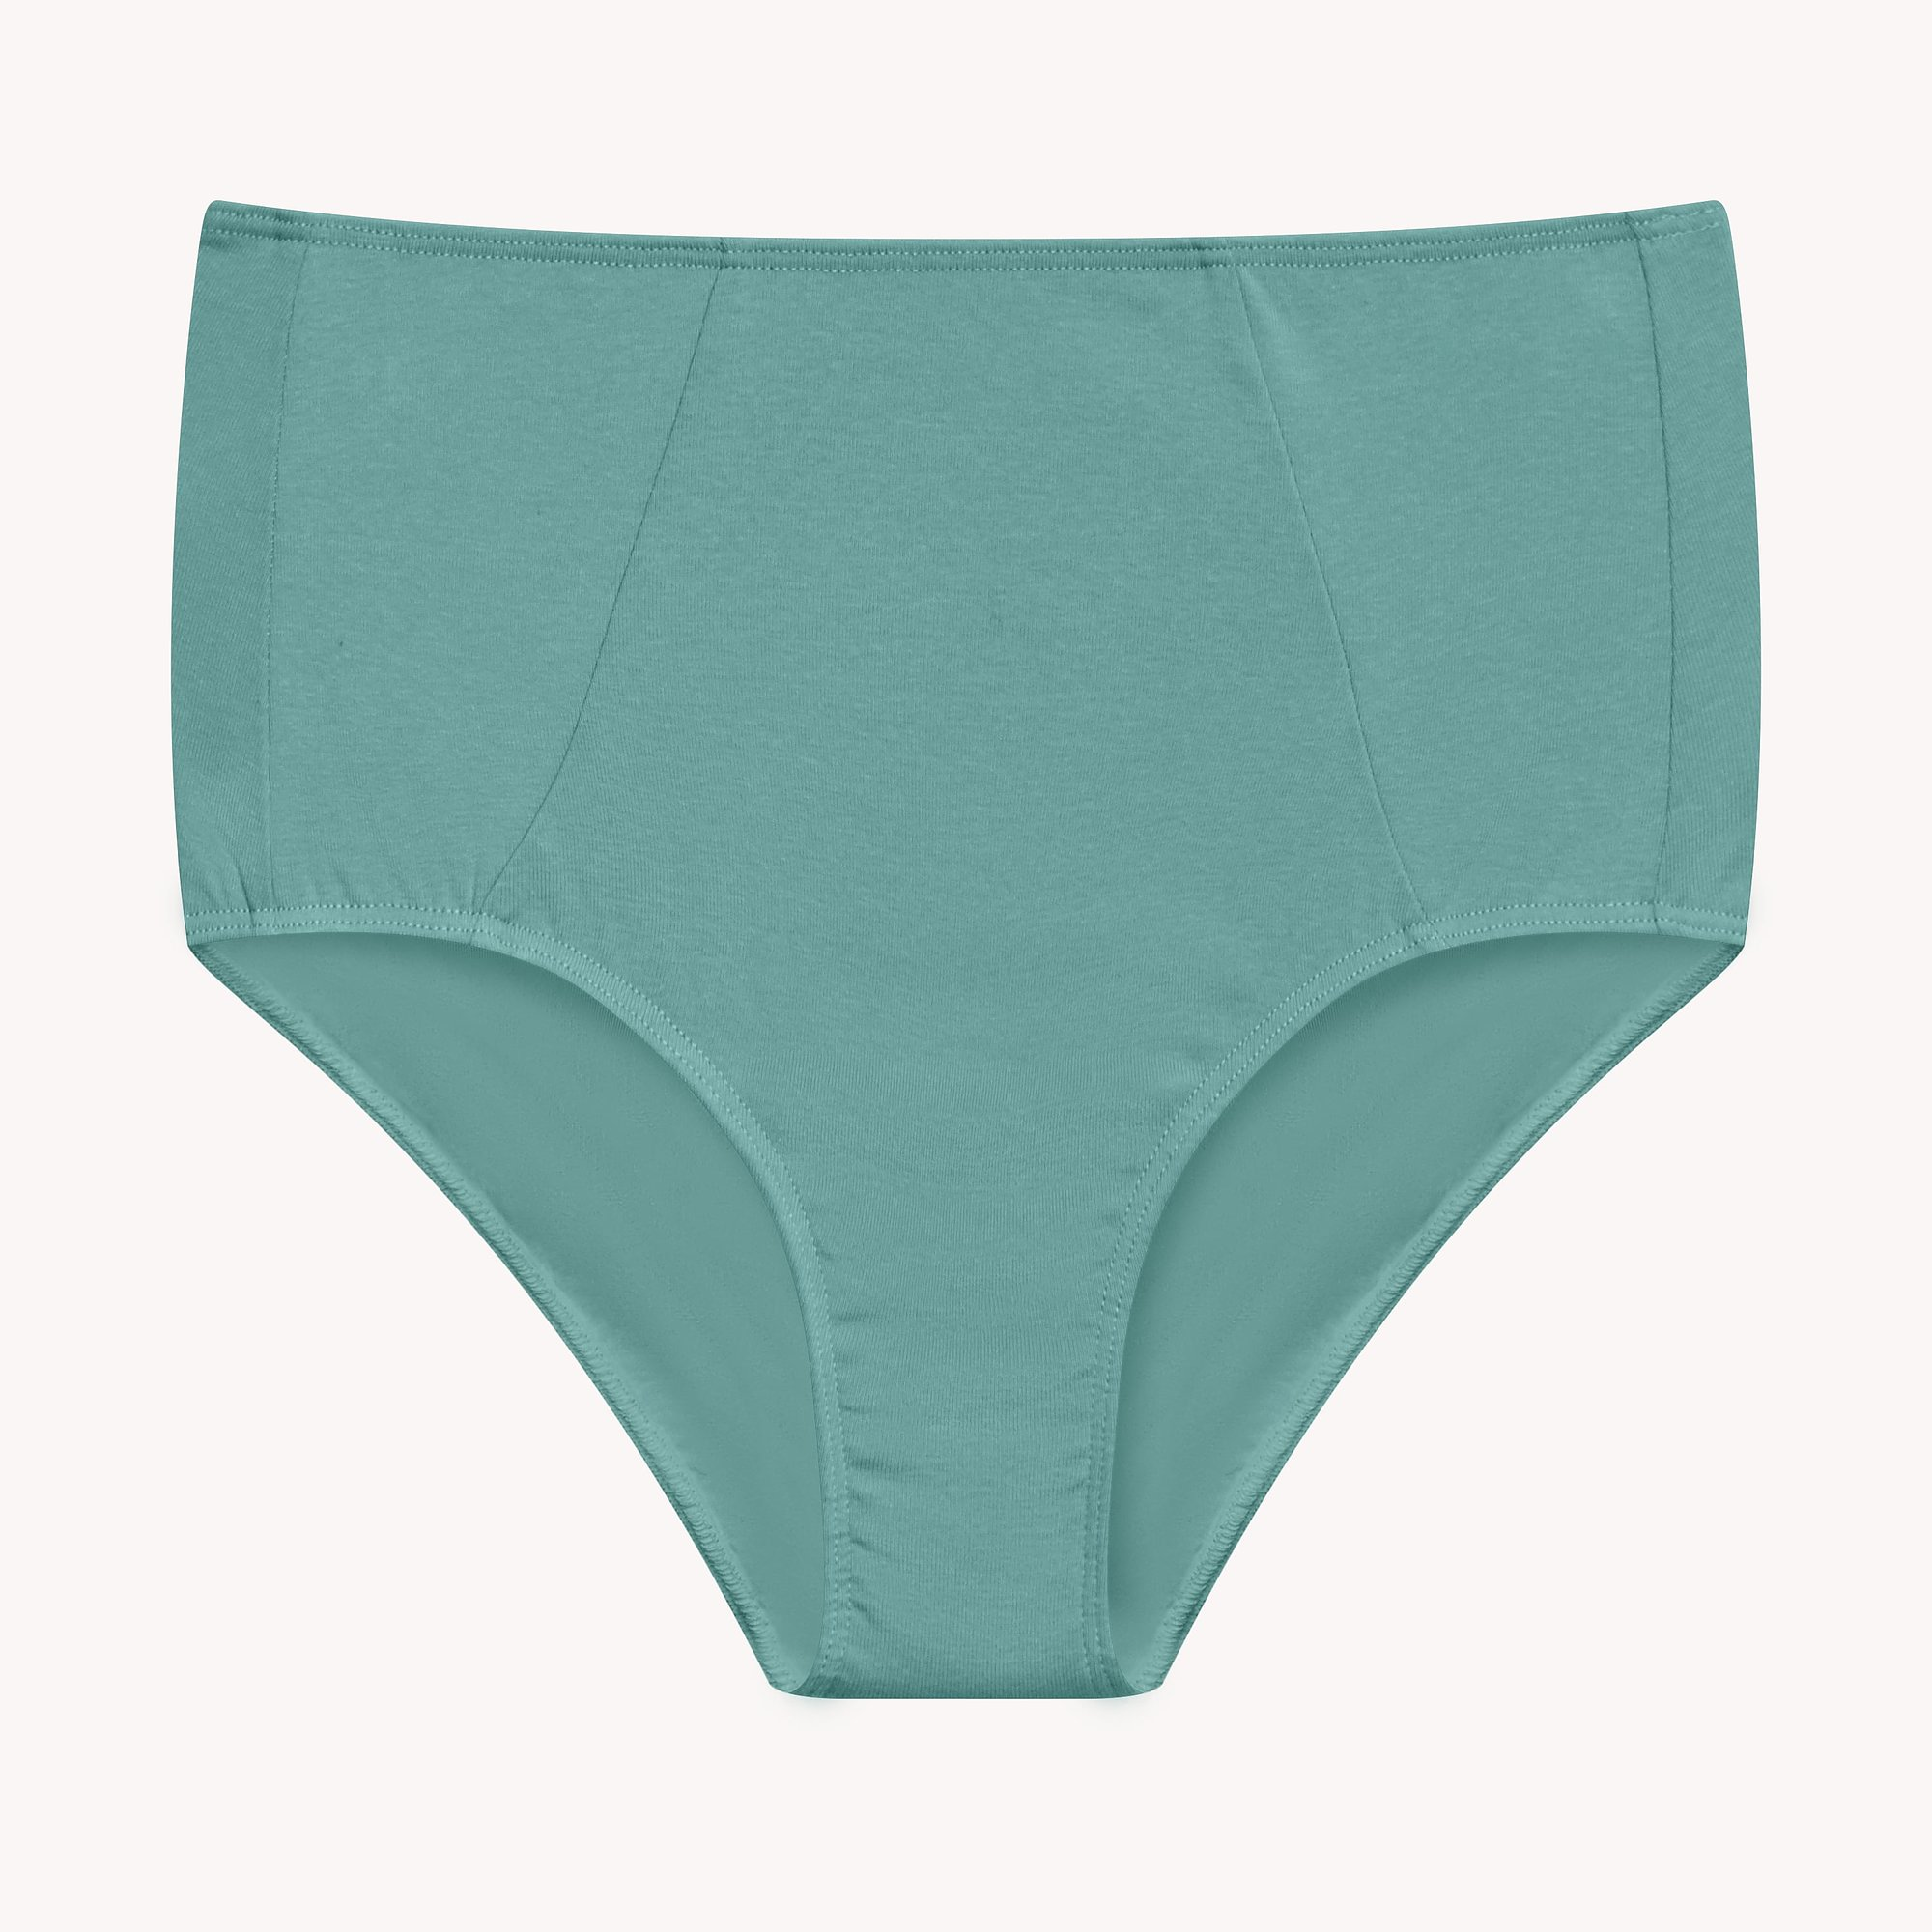 34996ba445 The Six Types Of Underwear Every Woman Needs